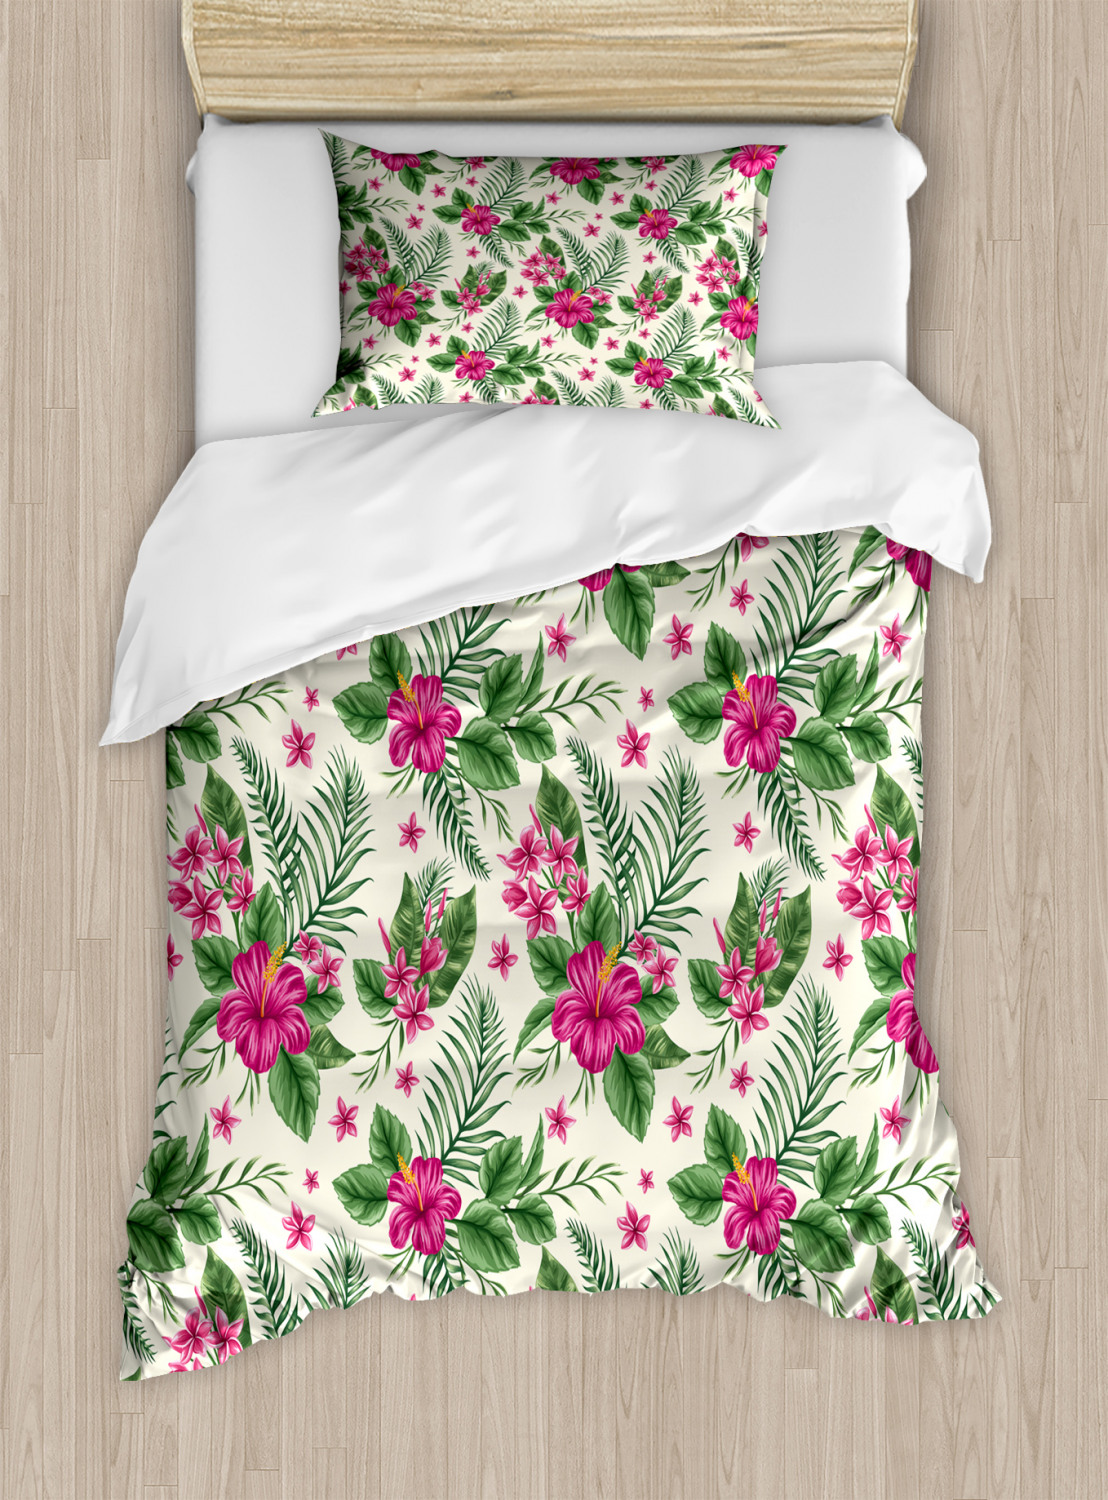 4 Pcs, King Beauty Decor Watercolor Duvet Cover Set Plumeria and Hibiscus Flora Tropical Island Nature Aloha Hawaii Jungle Microfiber Bedding Sets with Zipper and Corner Ties Magenta Cream Green